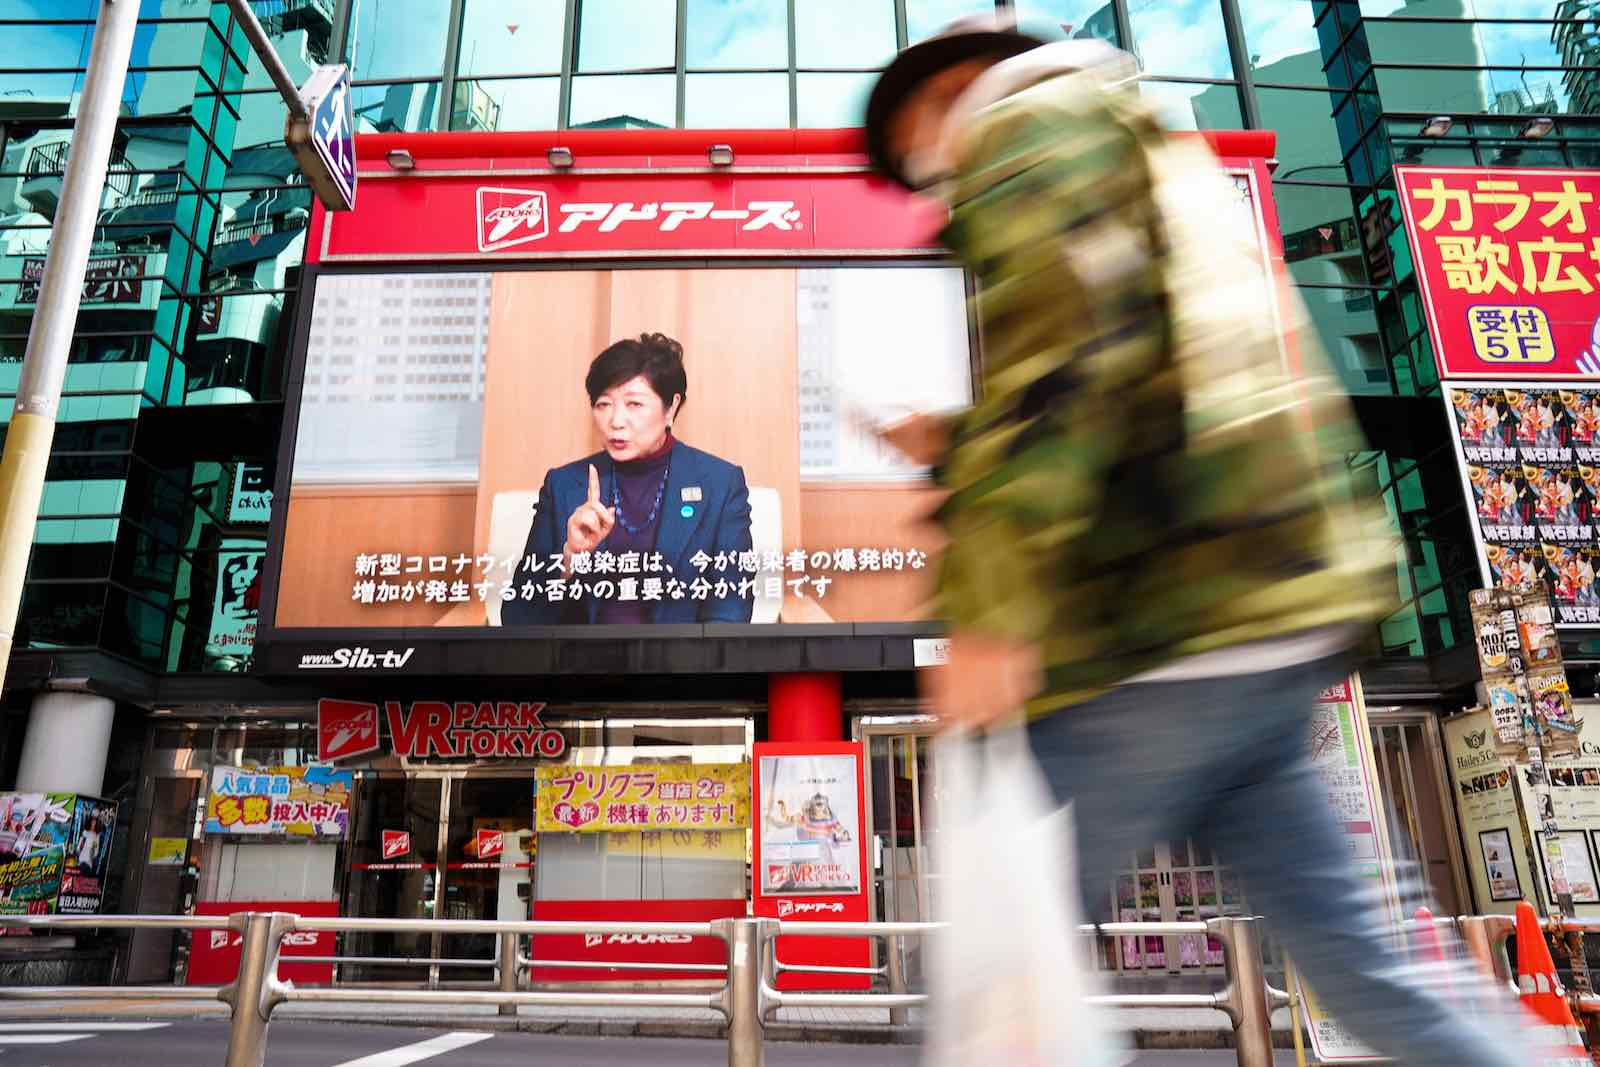 Governor Yuriko Koike on a video screen in Tokyo's Shibuya district requesting residents to follow Covid-19 stay-at-home orders, 11 April 2020 (Asahi Shimbun via Getty Images)